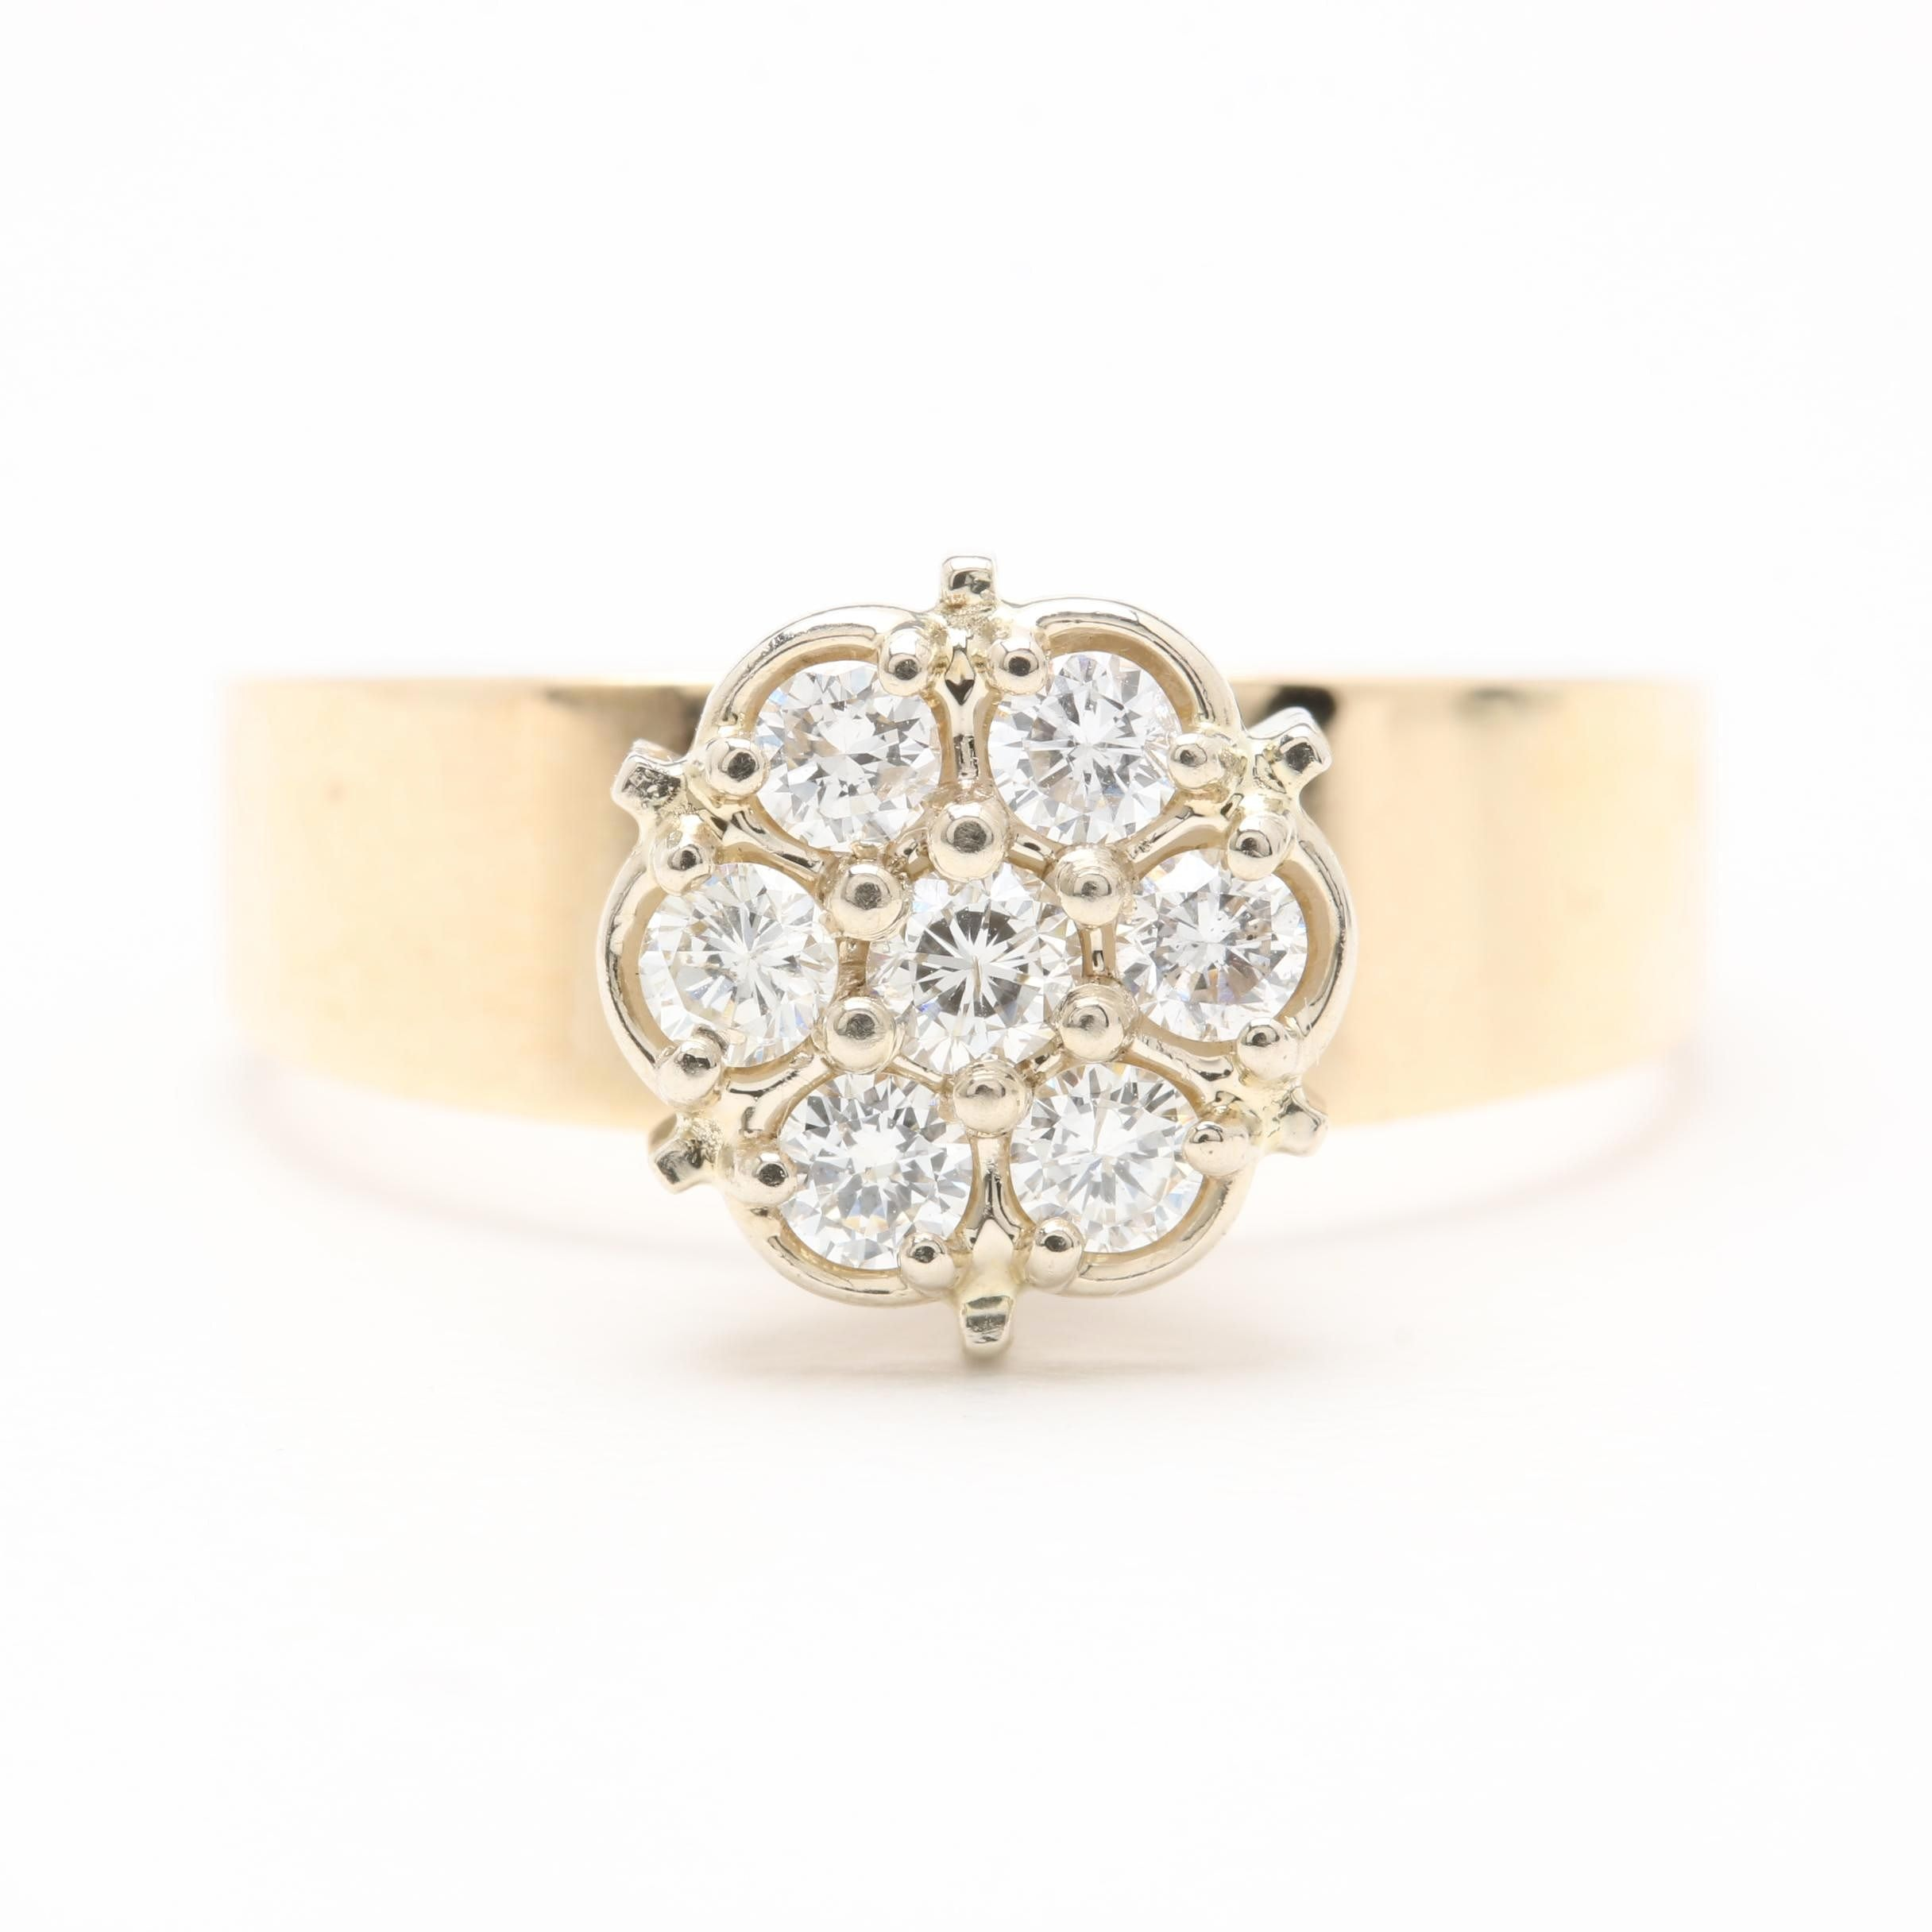 14K Yellow Gold Diamond Floral Cluster Ring